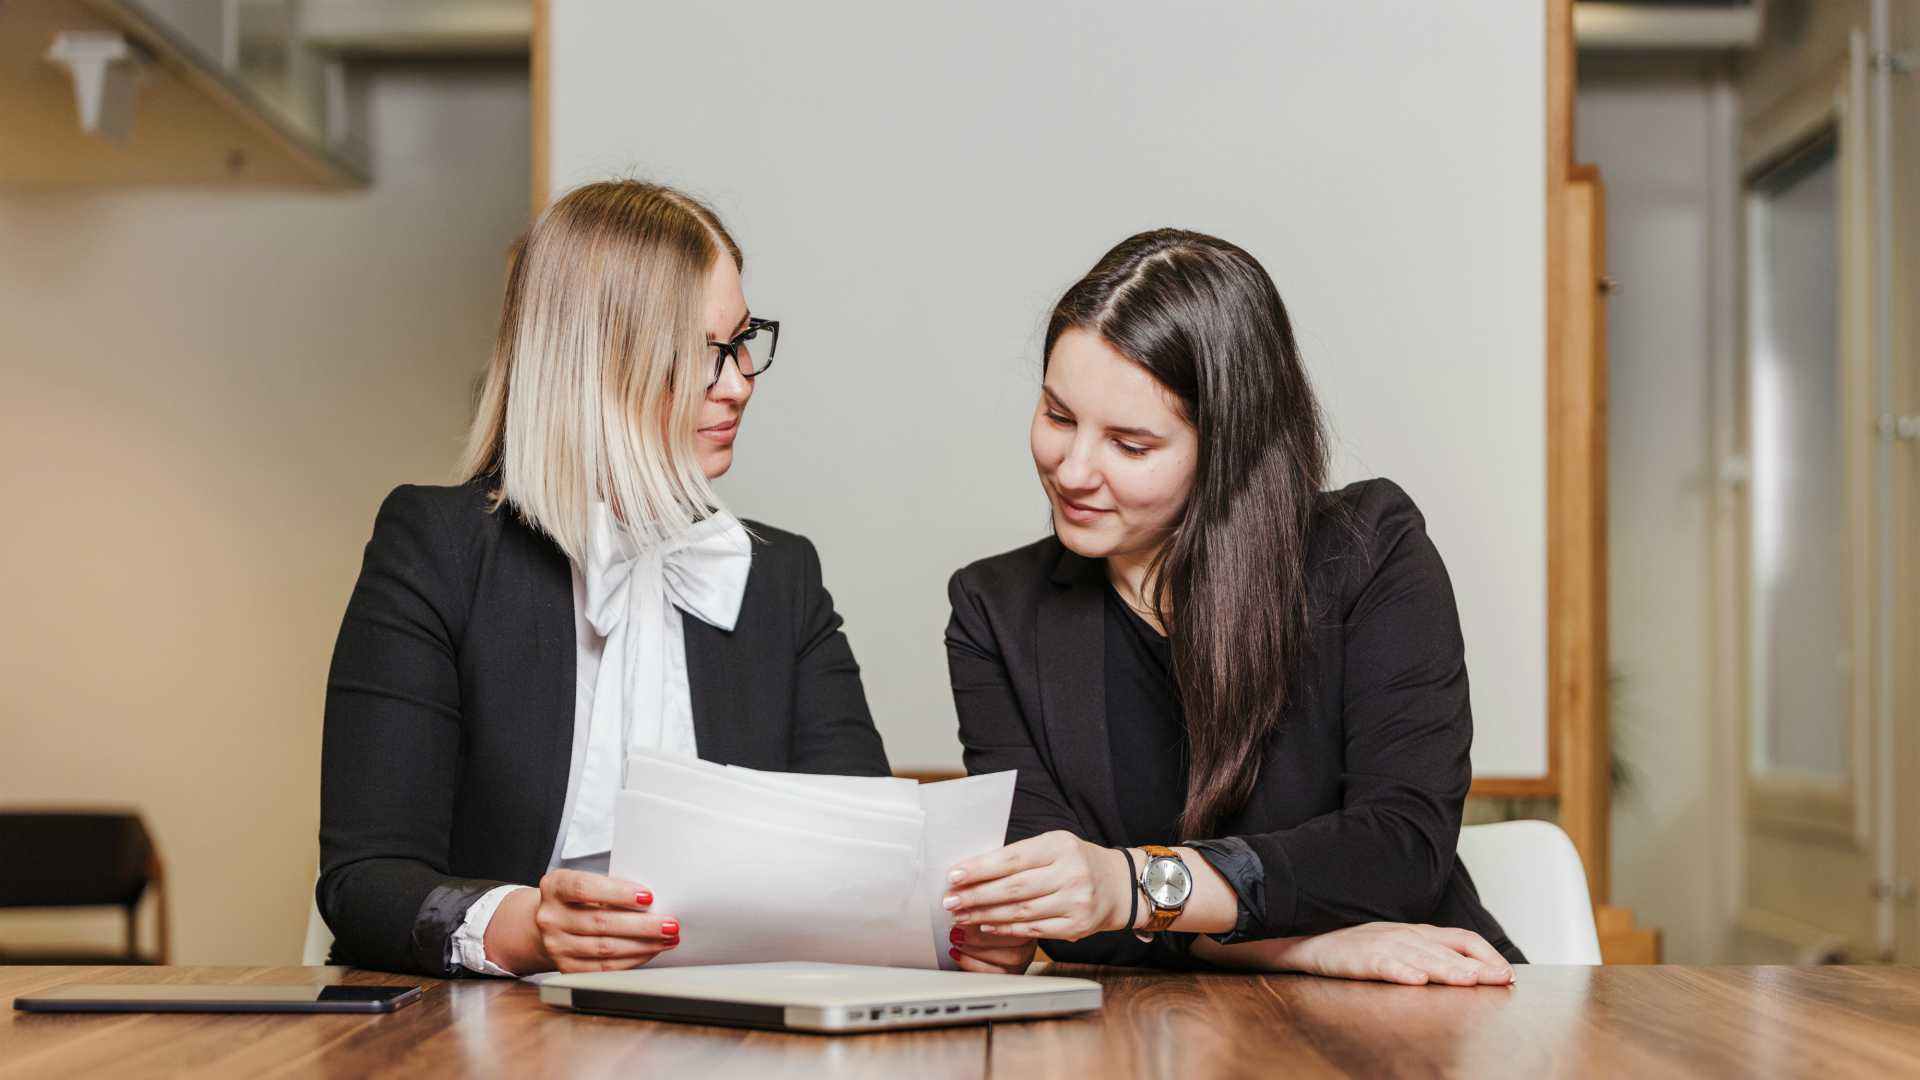 What Is Negotiation And Why Is It Important To Include In